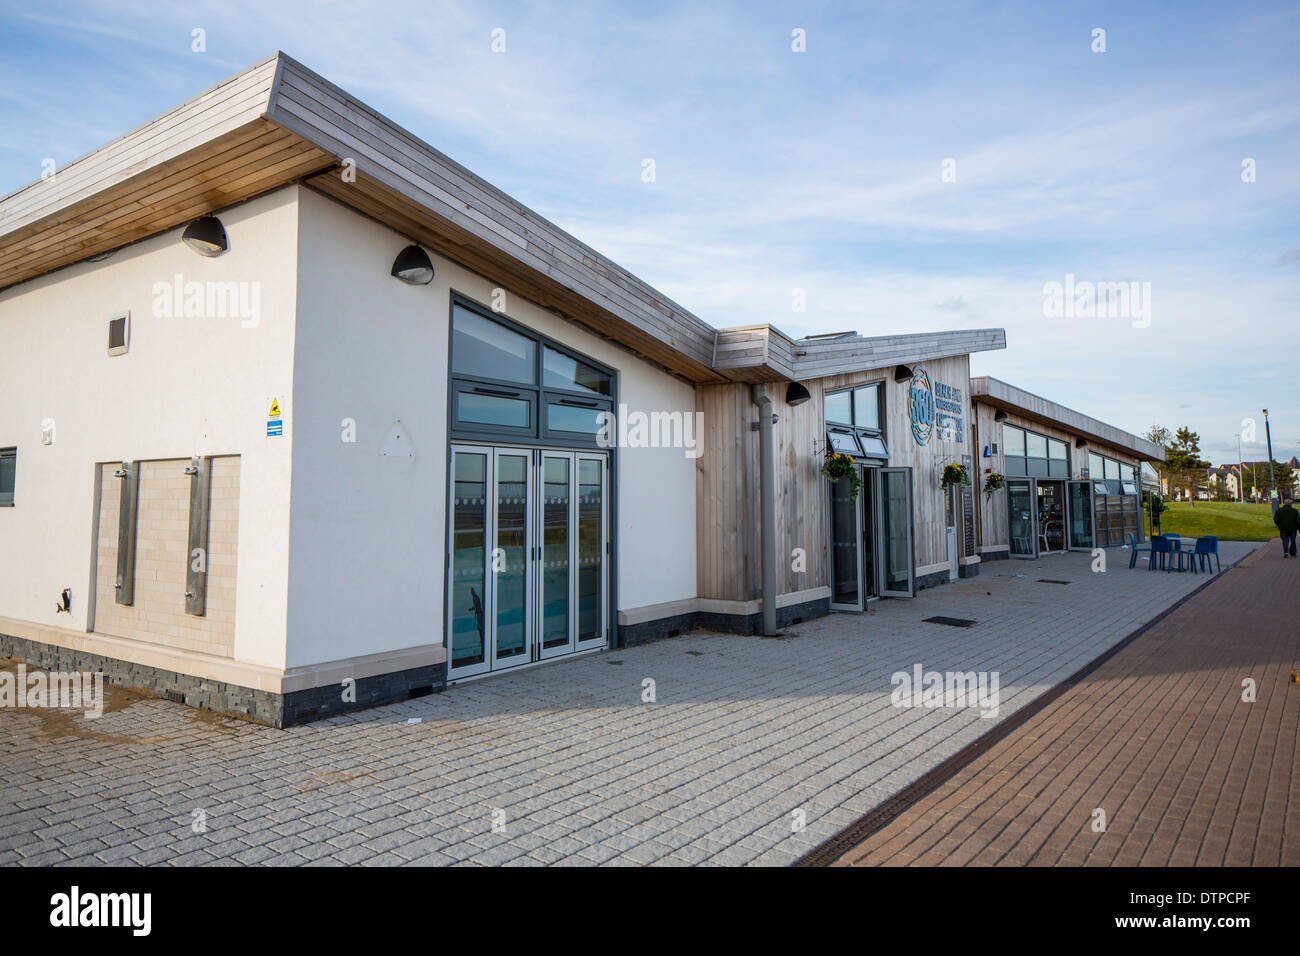 The 360 Beach and Watersports centre in Swansea, West Wales. - Stock Image